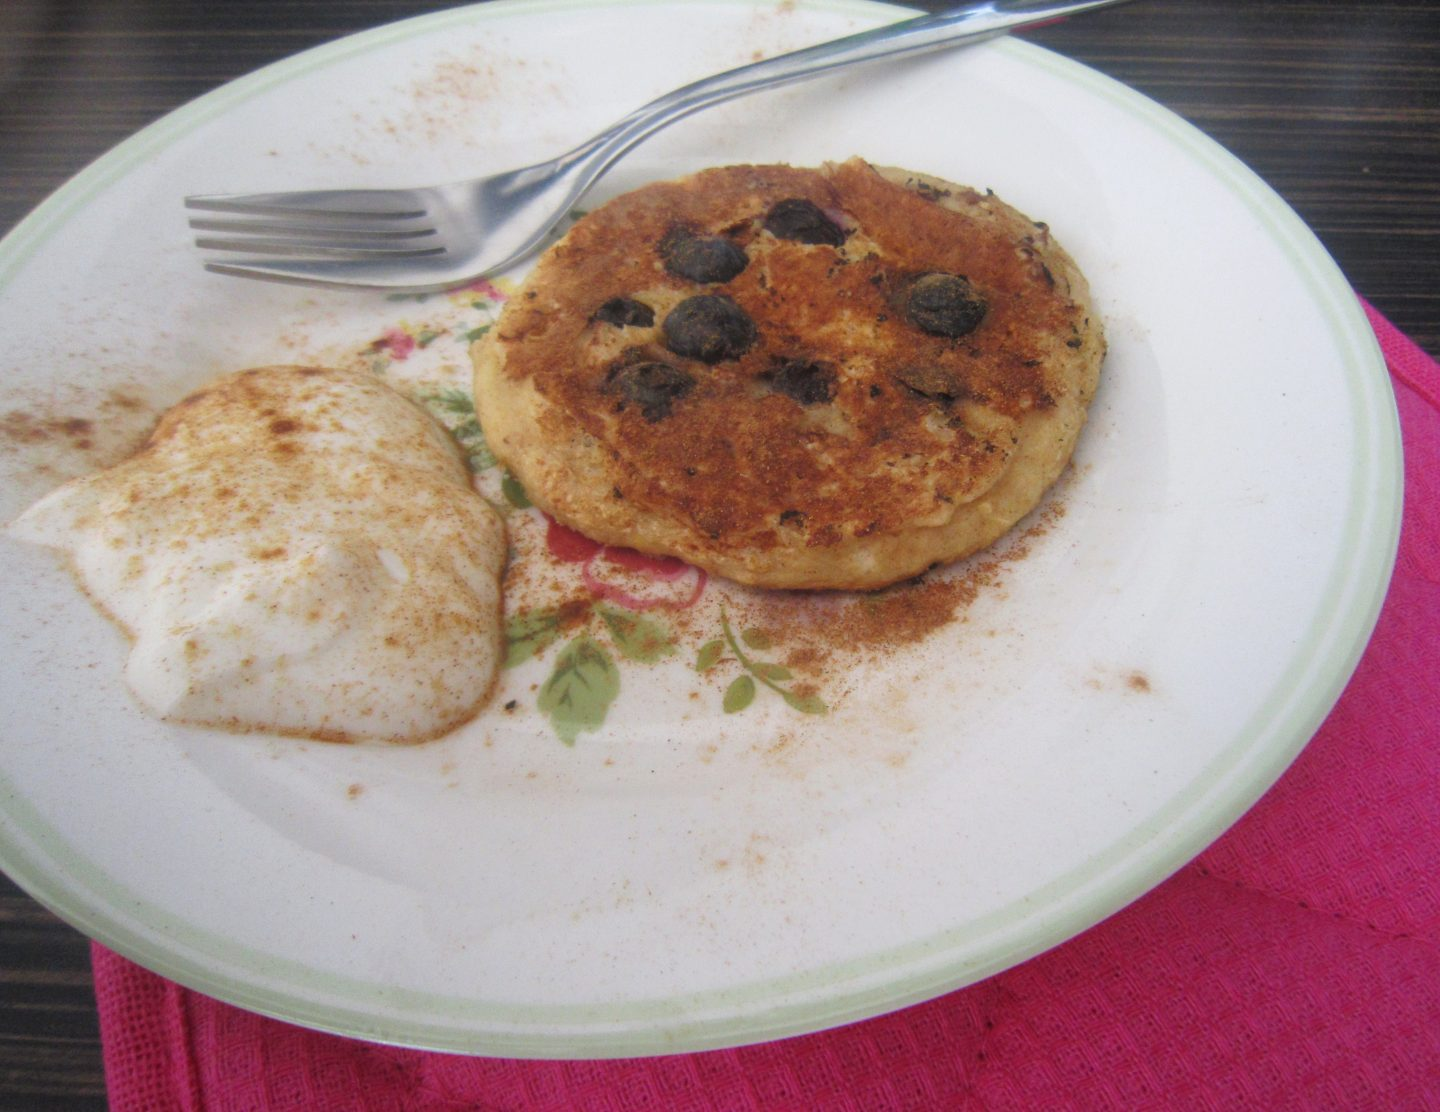 Oat & Blueberry Pancake Recipe